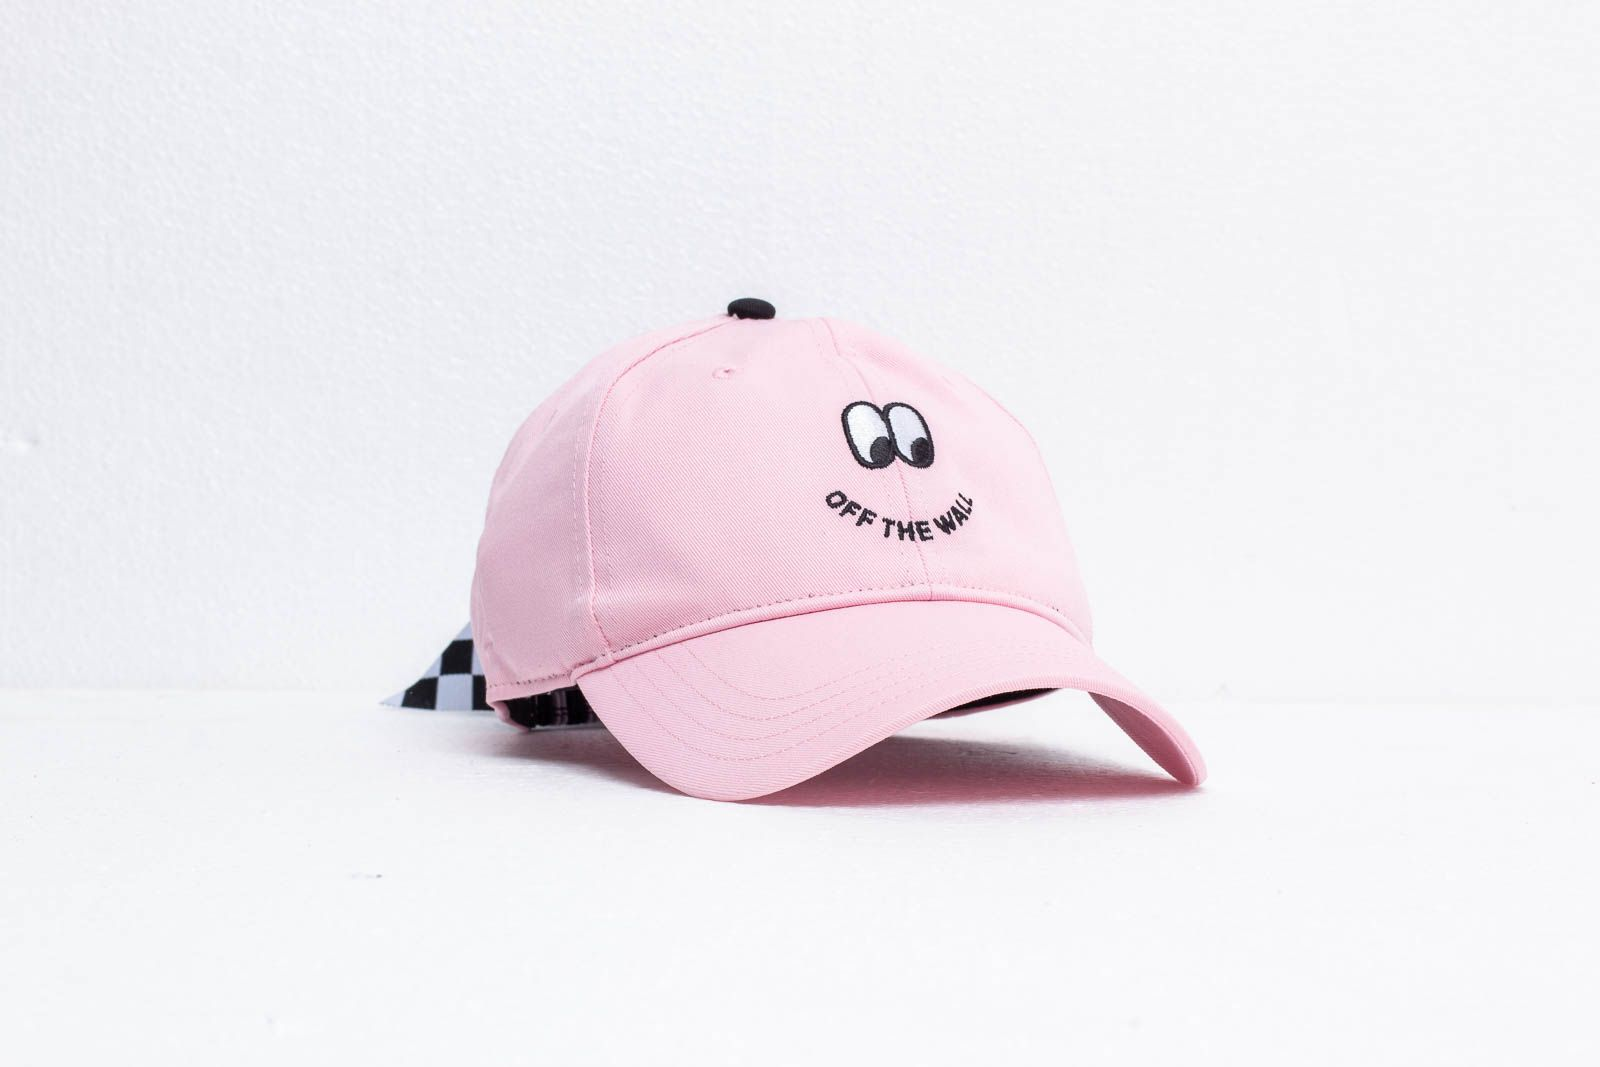 Vans x Lazy Oaf Off The Wall Lazy Cap Almond Blossom